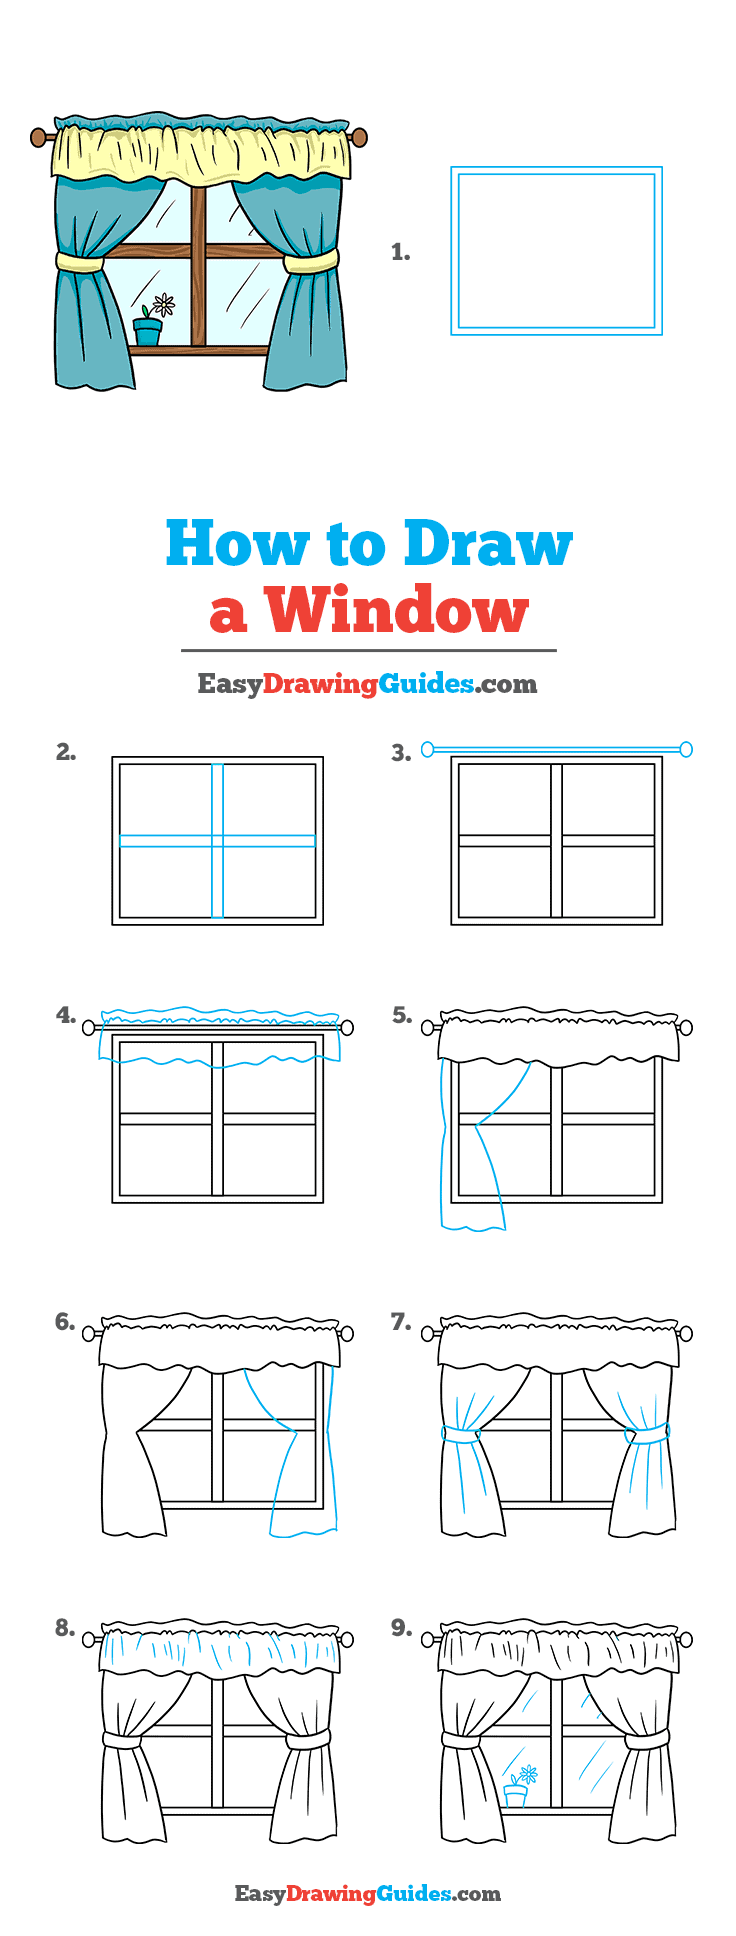 How to Draw a Window Step by Step Tutorial Image